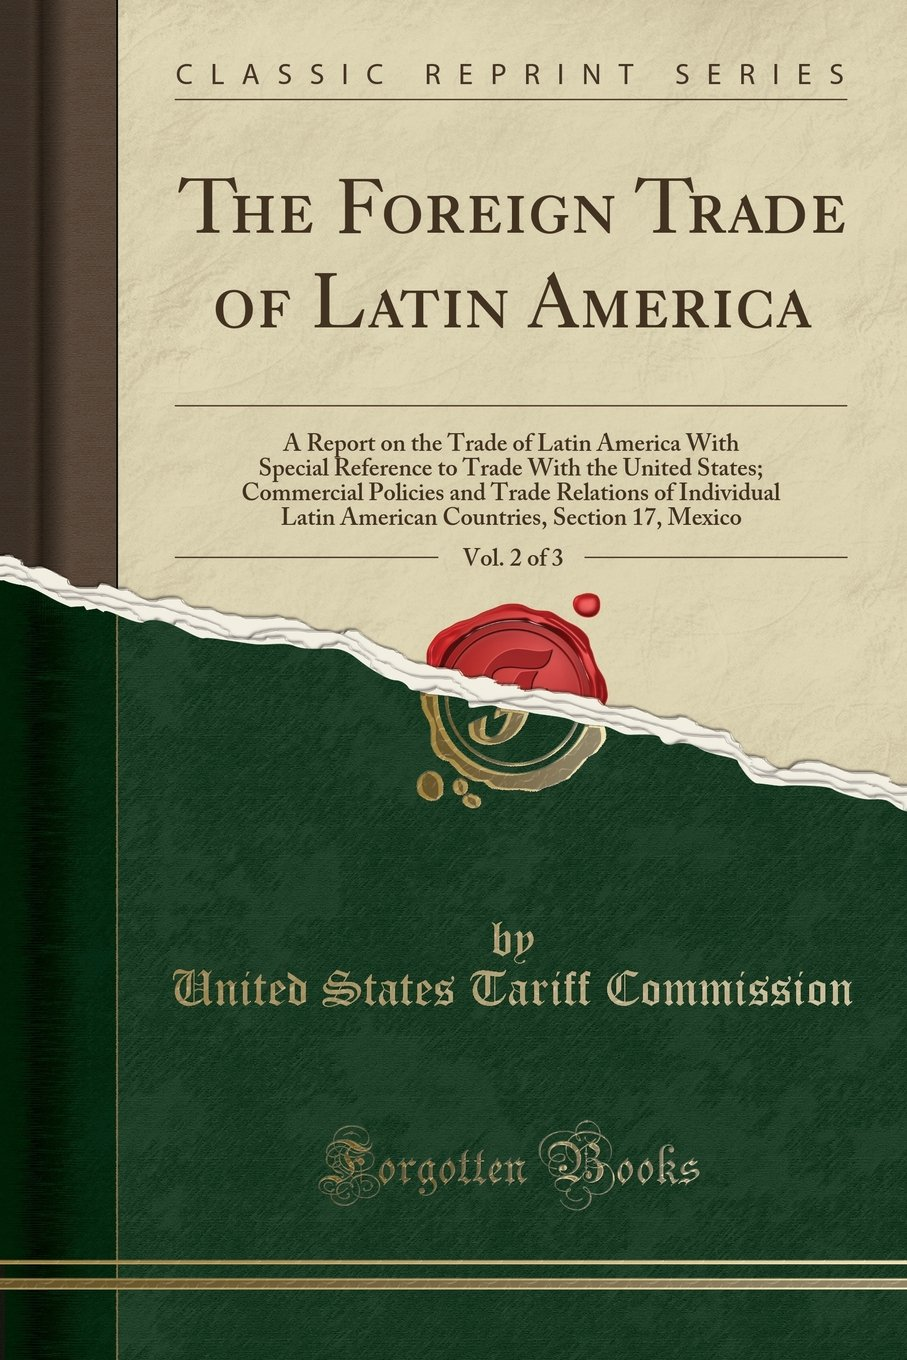 The Foreign Trade of Latin America, Vol. 2 of 3: A Report on the Trade of Latin America With Special Reference to Trade With the United States; ... Latin American Countries, Section 17, Mexico ebook